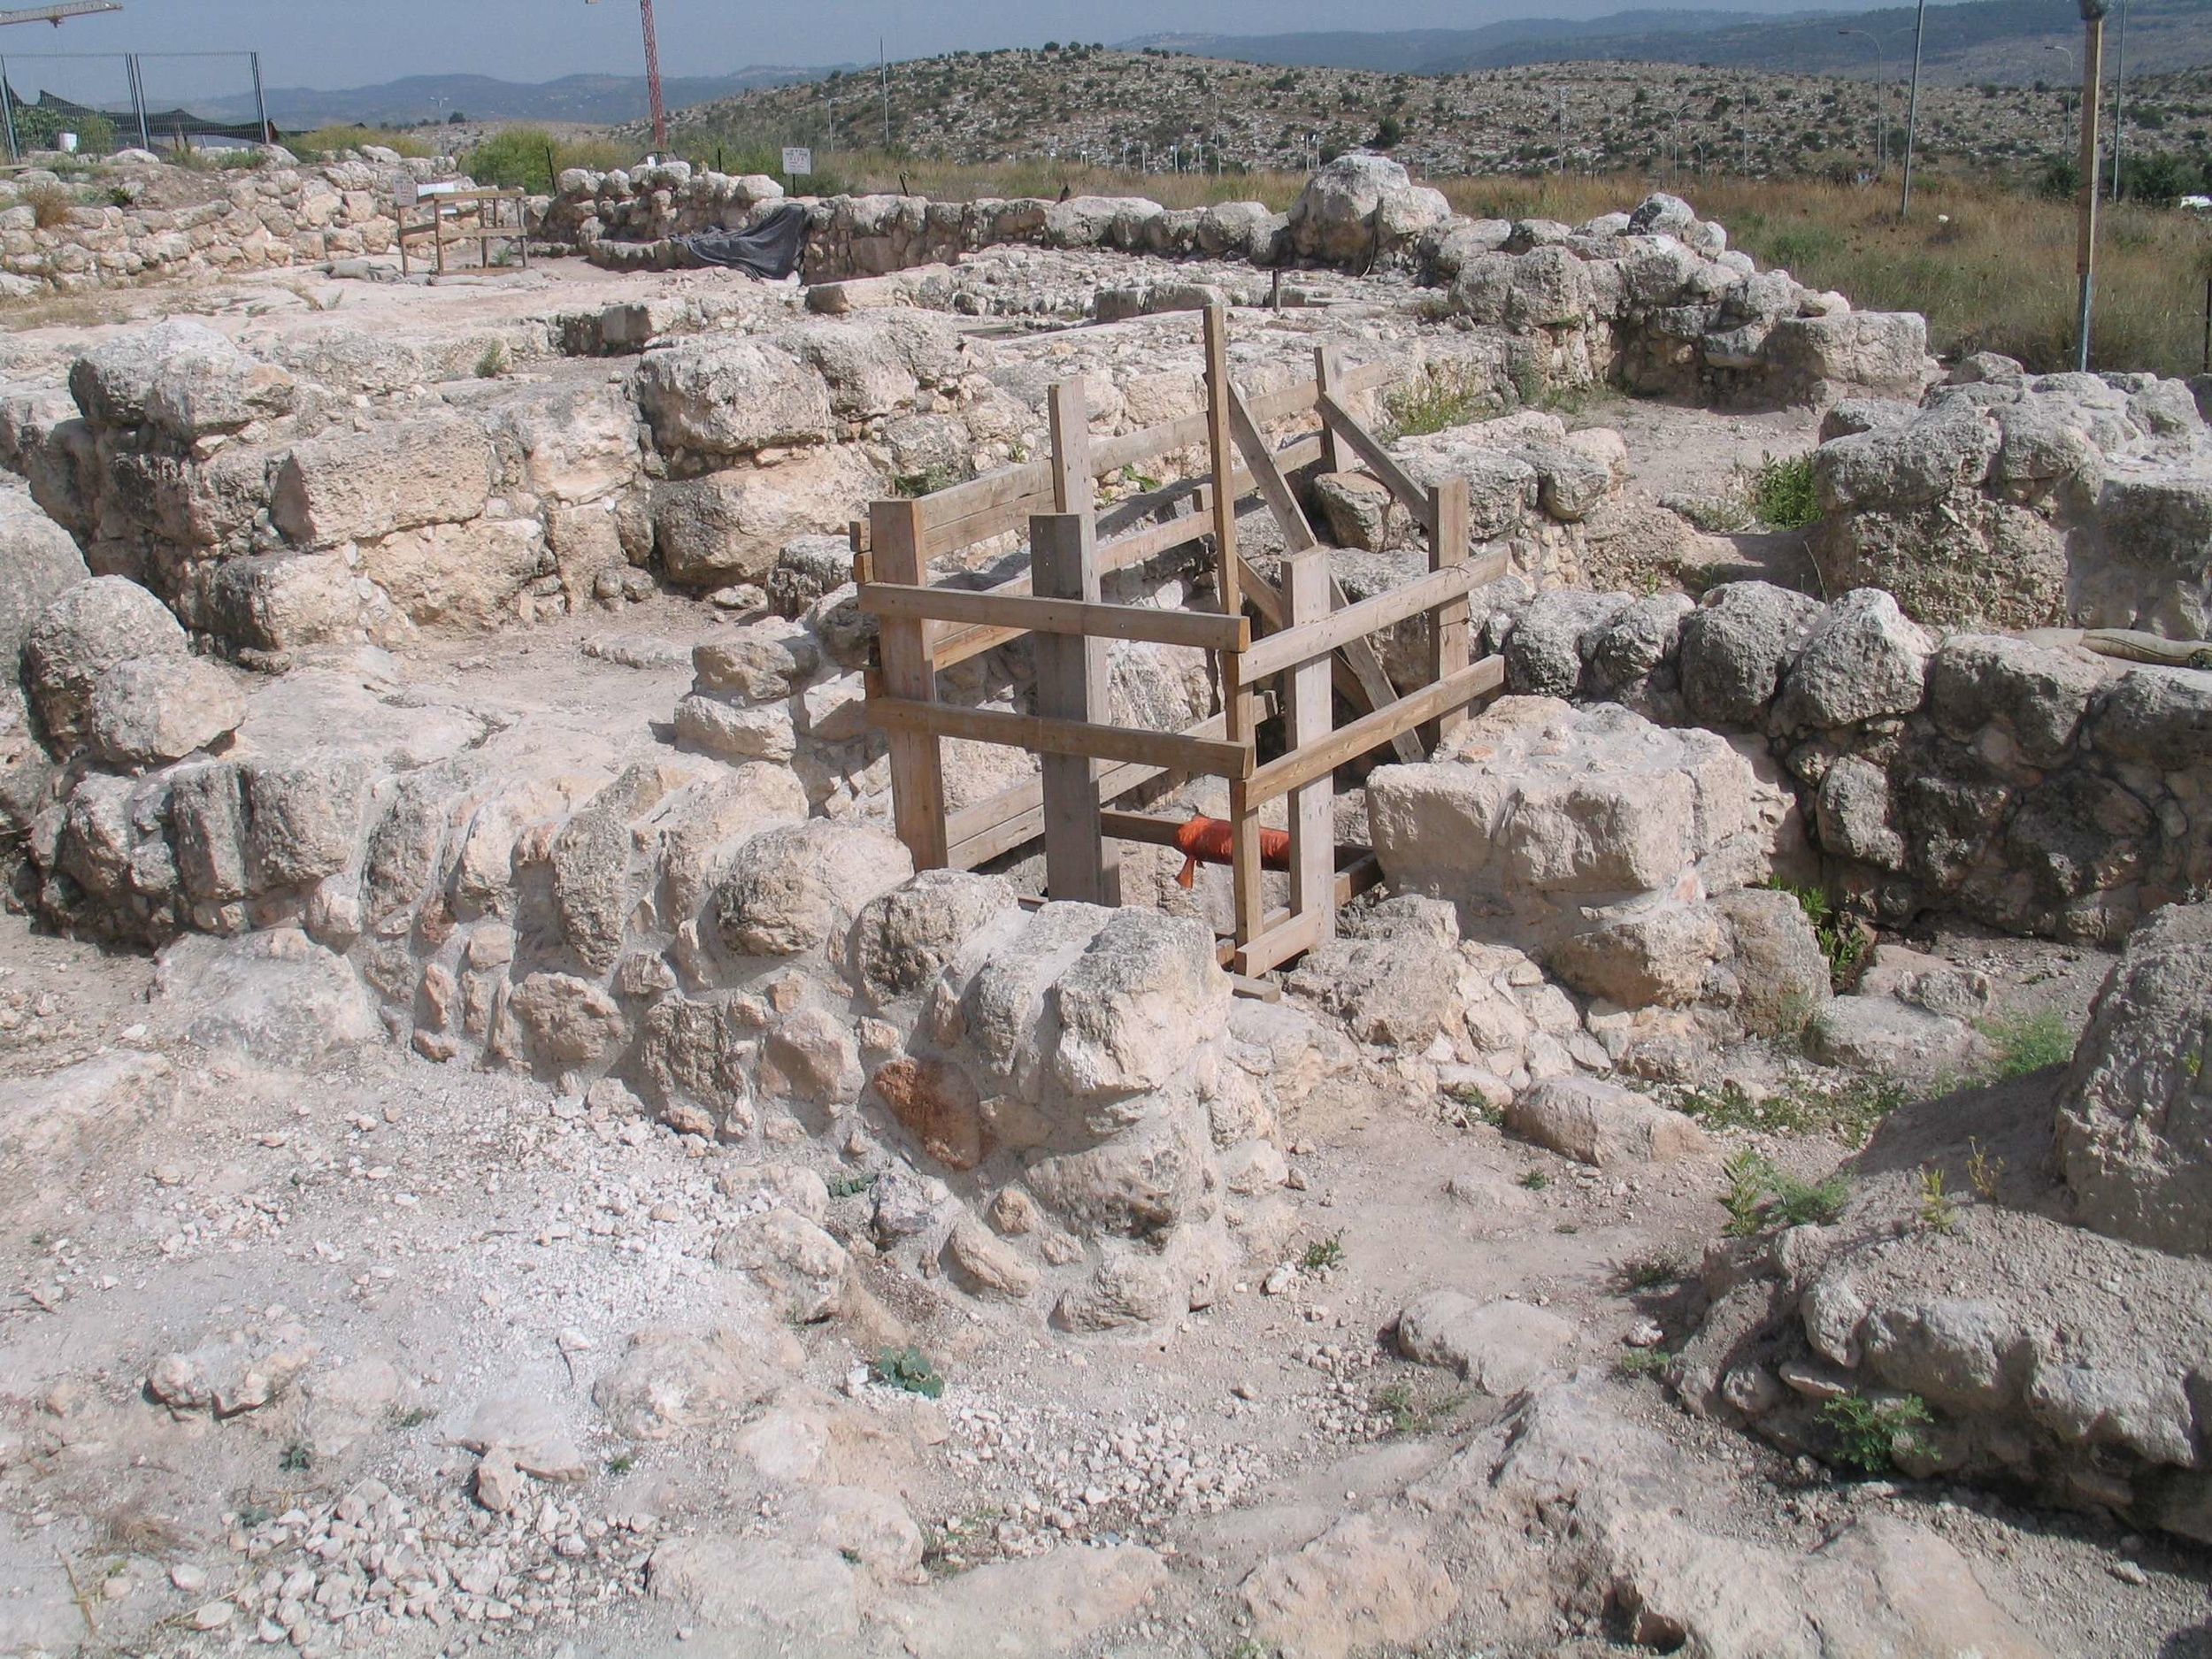 Click photo to download. Caption:in Modi'in, remains of the Umm el-Umdan (Mother of Pillars in Arabic) synagogue, which was built in the Hasmonean period.The structure, located near the Buchman neighborhood on the Modi'in-Latrun road, closely resembles other renowned Second Temple-period synagogues, such as those at Masada, Herodium, and Gamla, that have all become major tourism sites. Credit:Bukvoed via Wikimedia Commons.